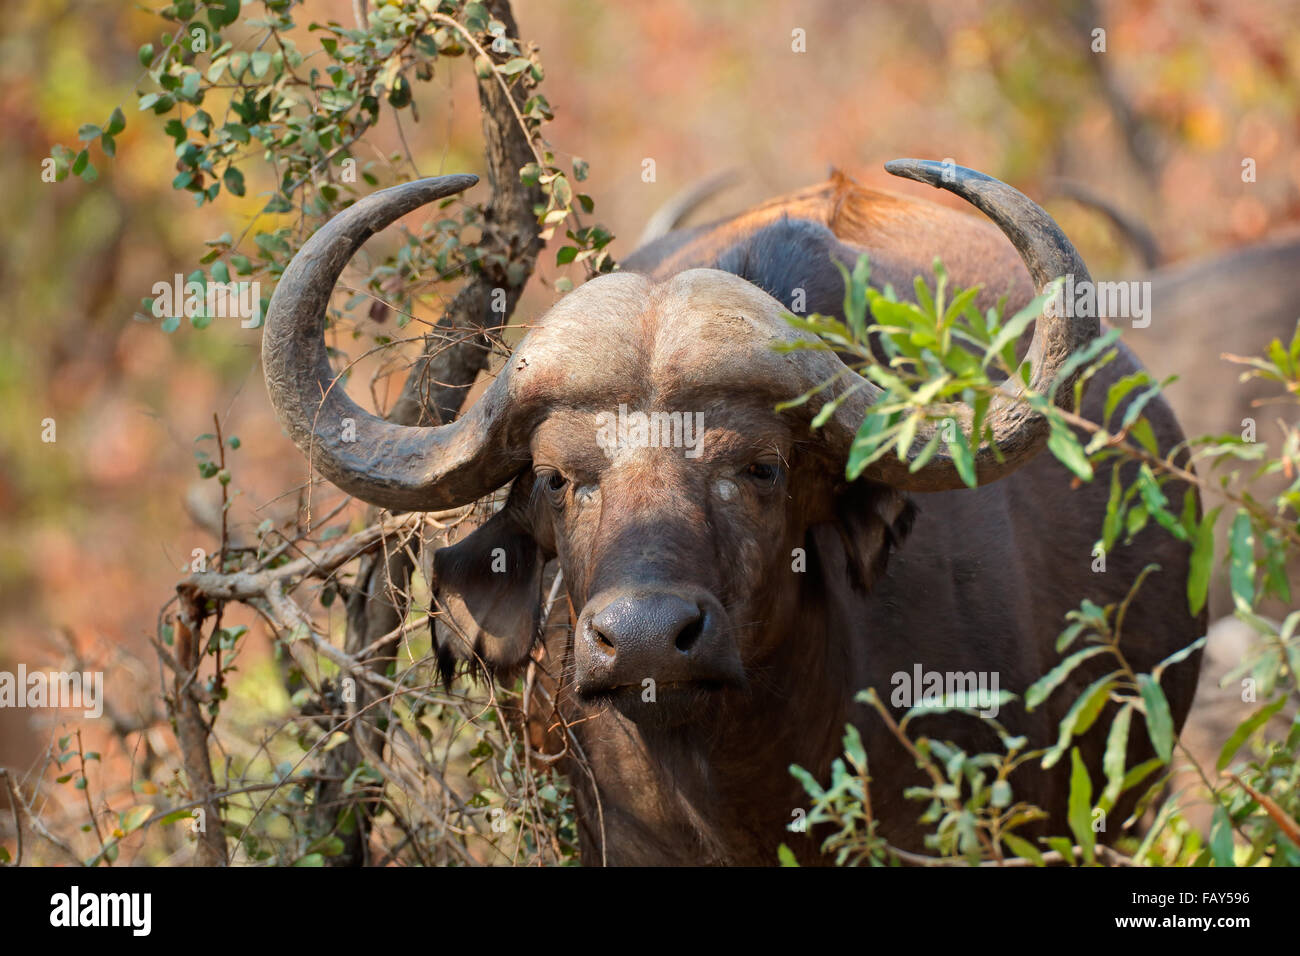 Portrait of an African or Cape buffalo (Syncerus caffer), Kruger National Park, South Africa - Stock Image